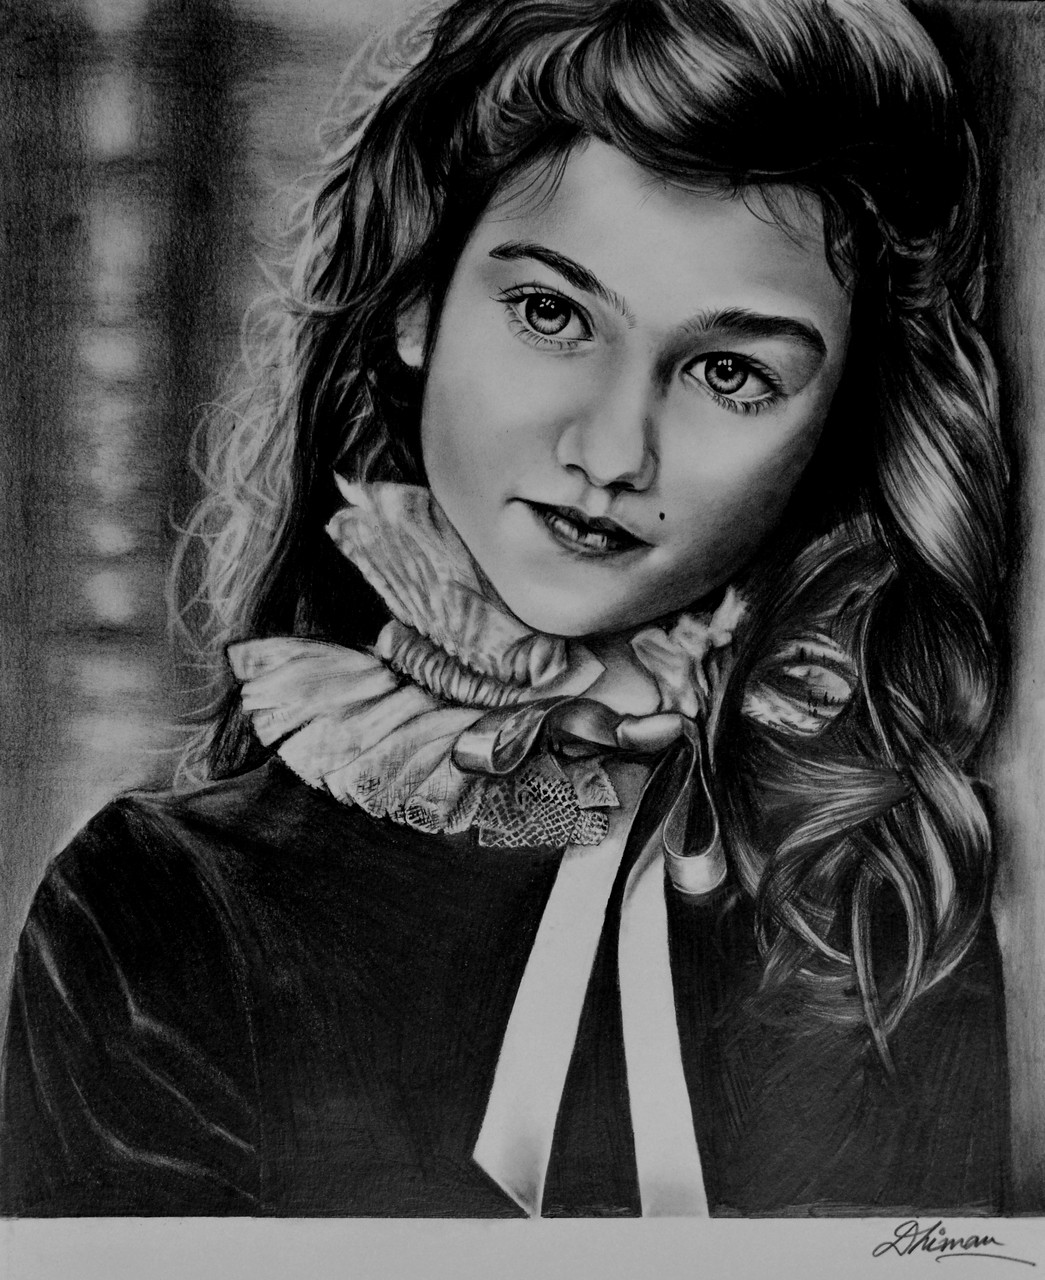 Girl sketch portrait pencil charcoal realistic hyperrealistic art